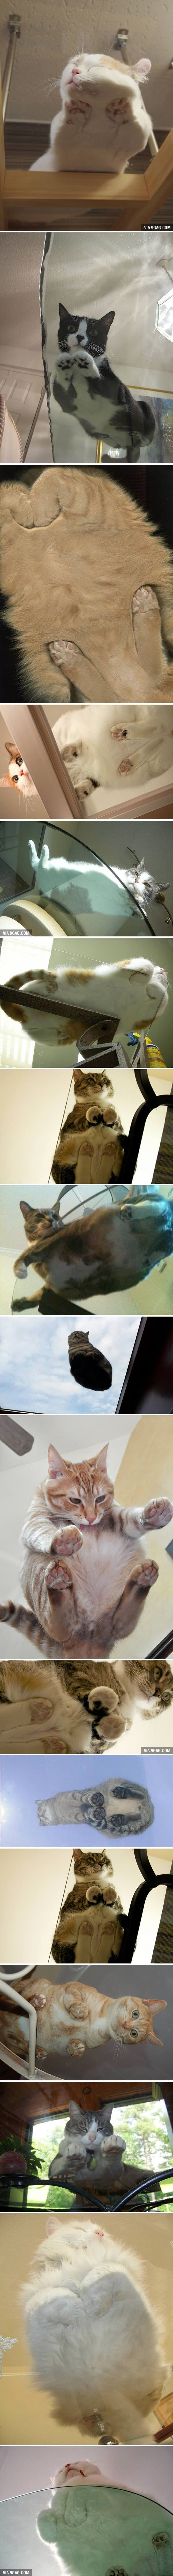 Best 25 Cats on glass tables ideas on Pinterest